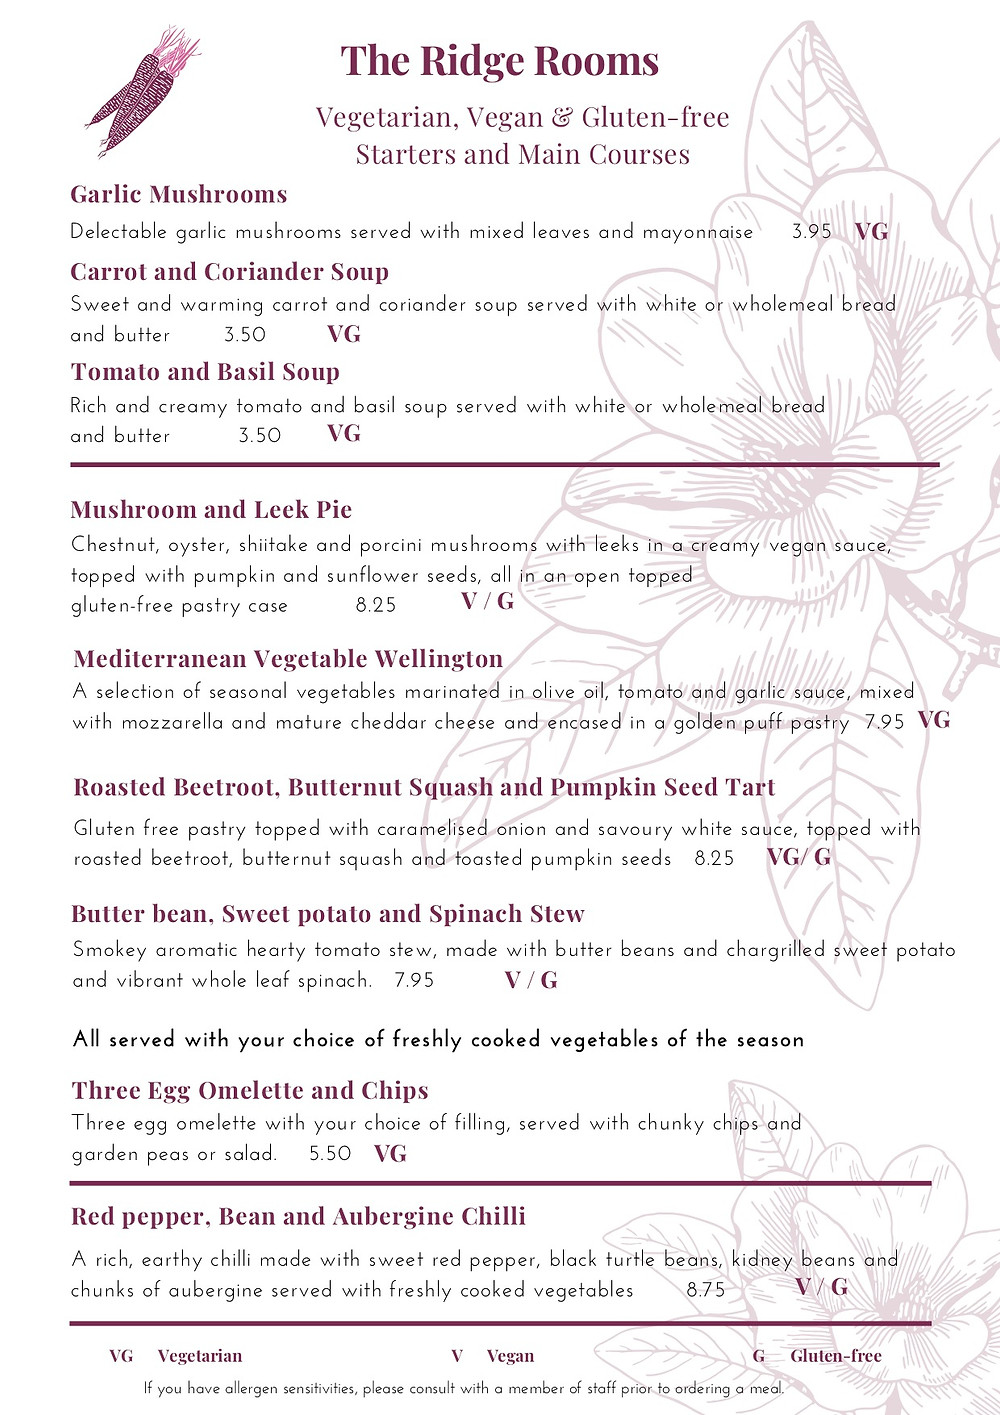 Vegetarian, Vegan, Gluten-free starters and main course, The Ridge Rooms Restaurant, Boston, Lincolnshire